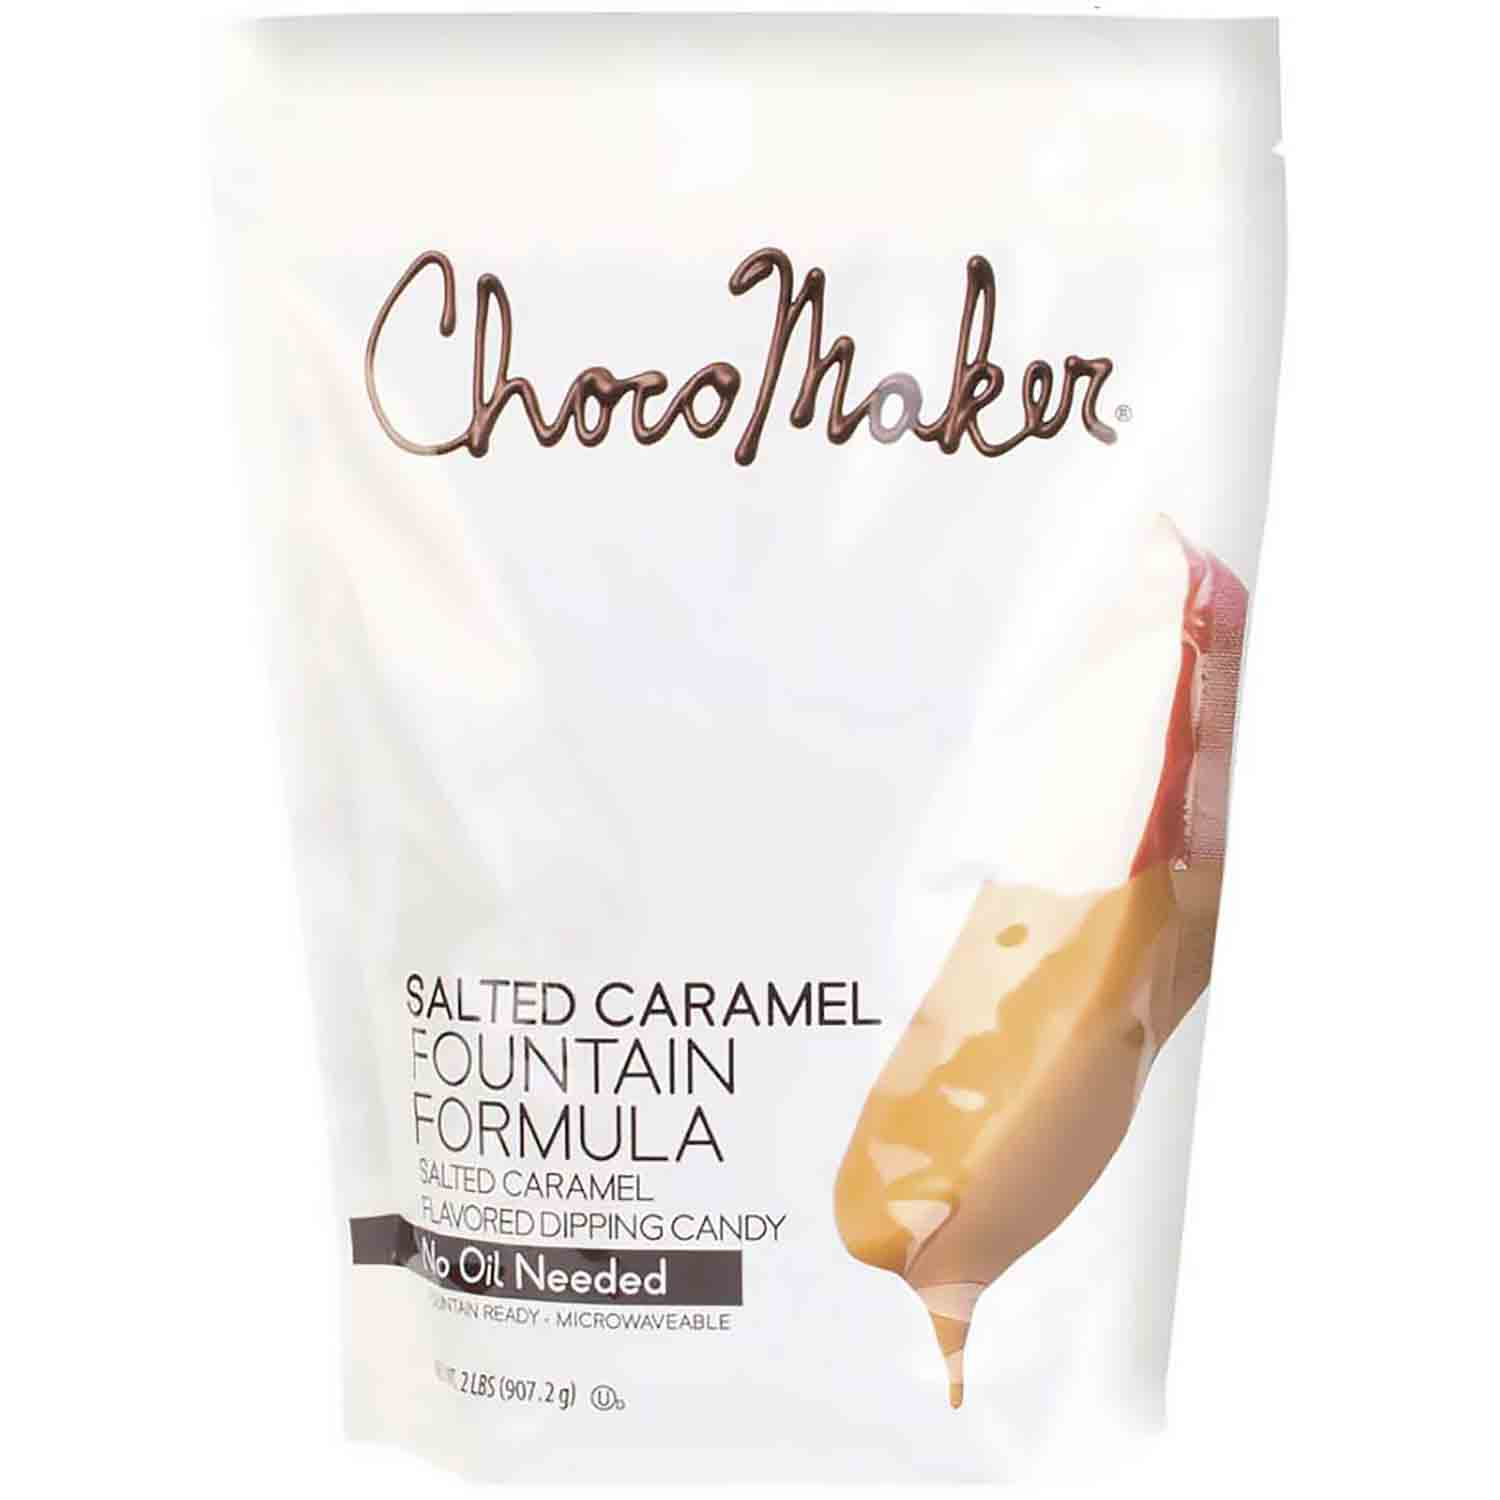 ChocoMaker Salted Caramel Flavored Fountain Candy Coating